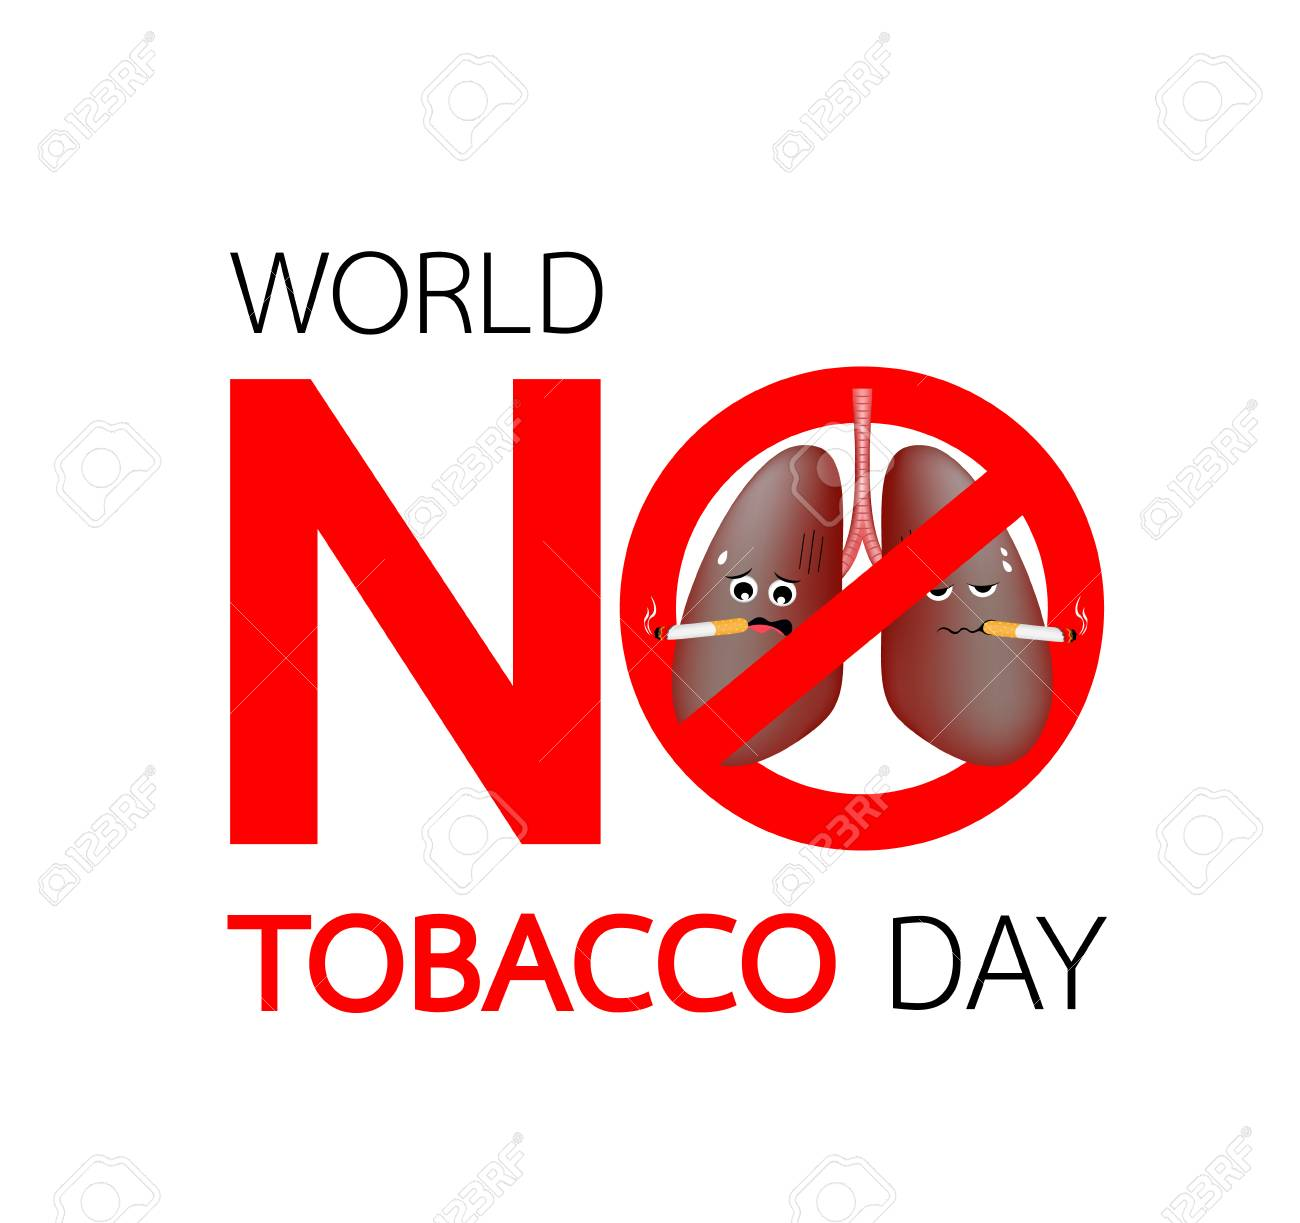 World No Tobacco Design With Lung Character Stop Smoking Concept Royalty Free Cliparts Vectors And Stock Illustration Image 126326584